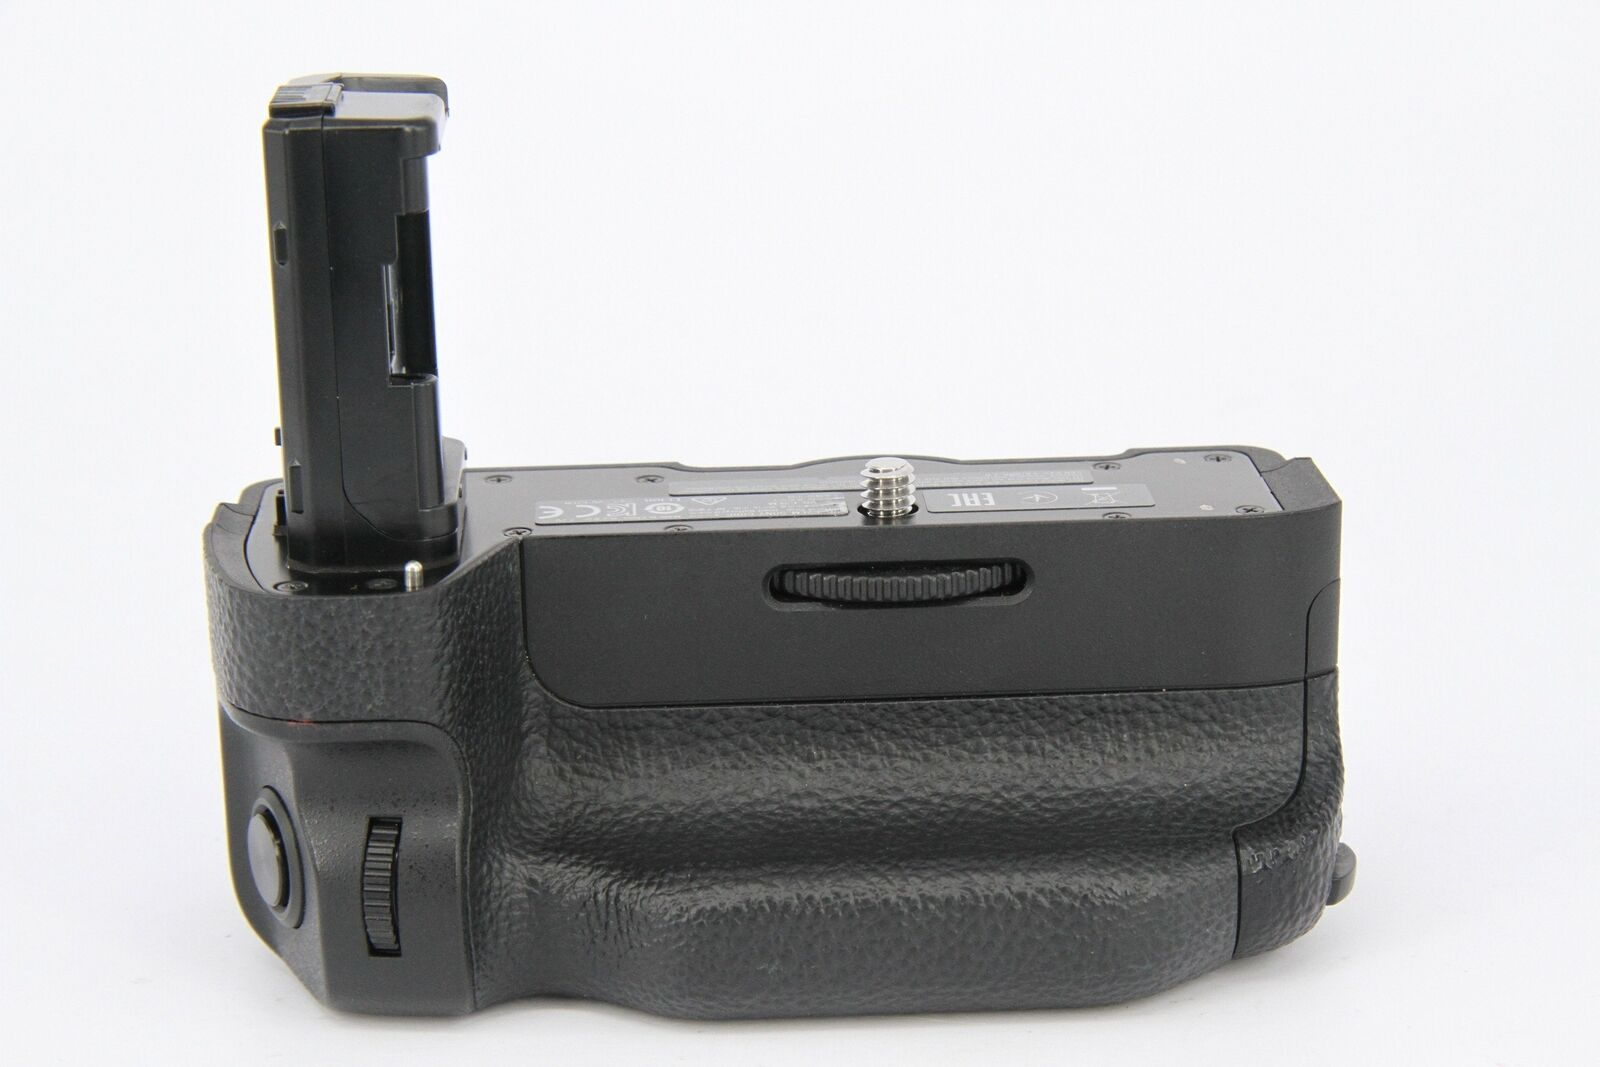 Sony VG-C2EM Vertical Battery Grip for A7 II, A7R II, and A7S II - Profession...